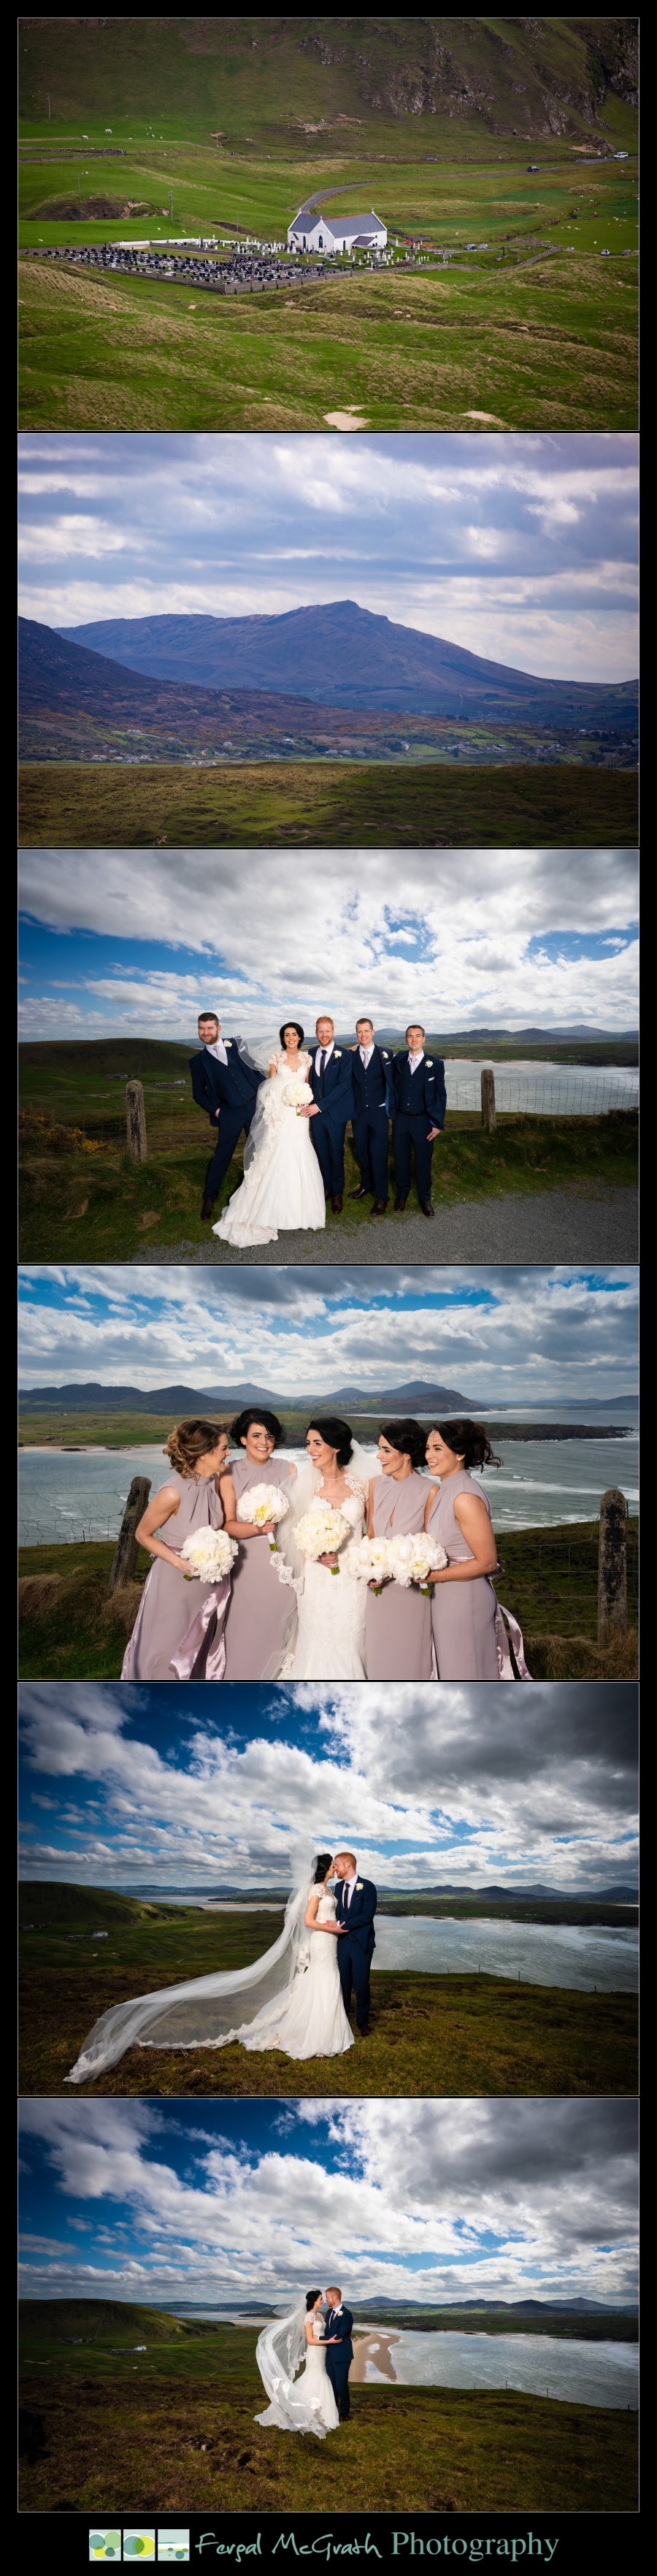 Ballyliffin Lodge Hotel Weddings amazing wedding photos in the donegal landscape